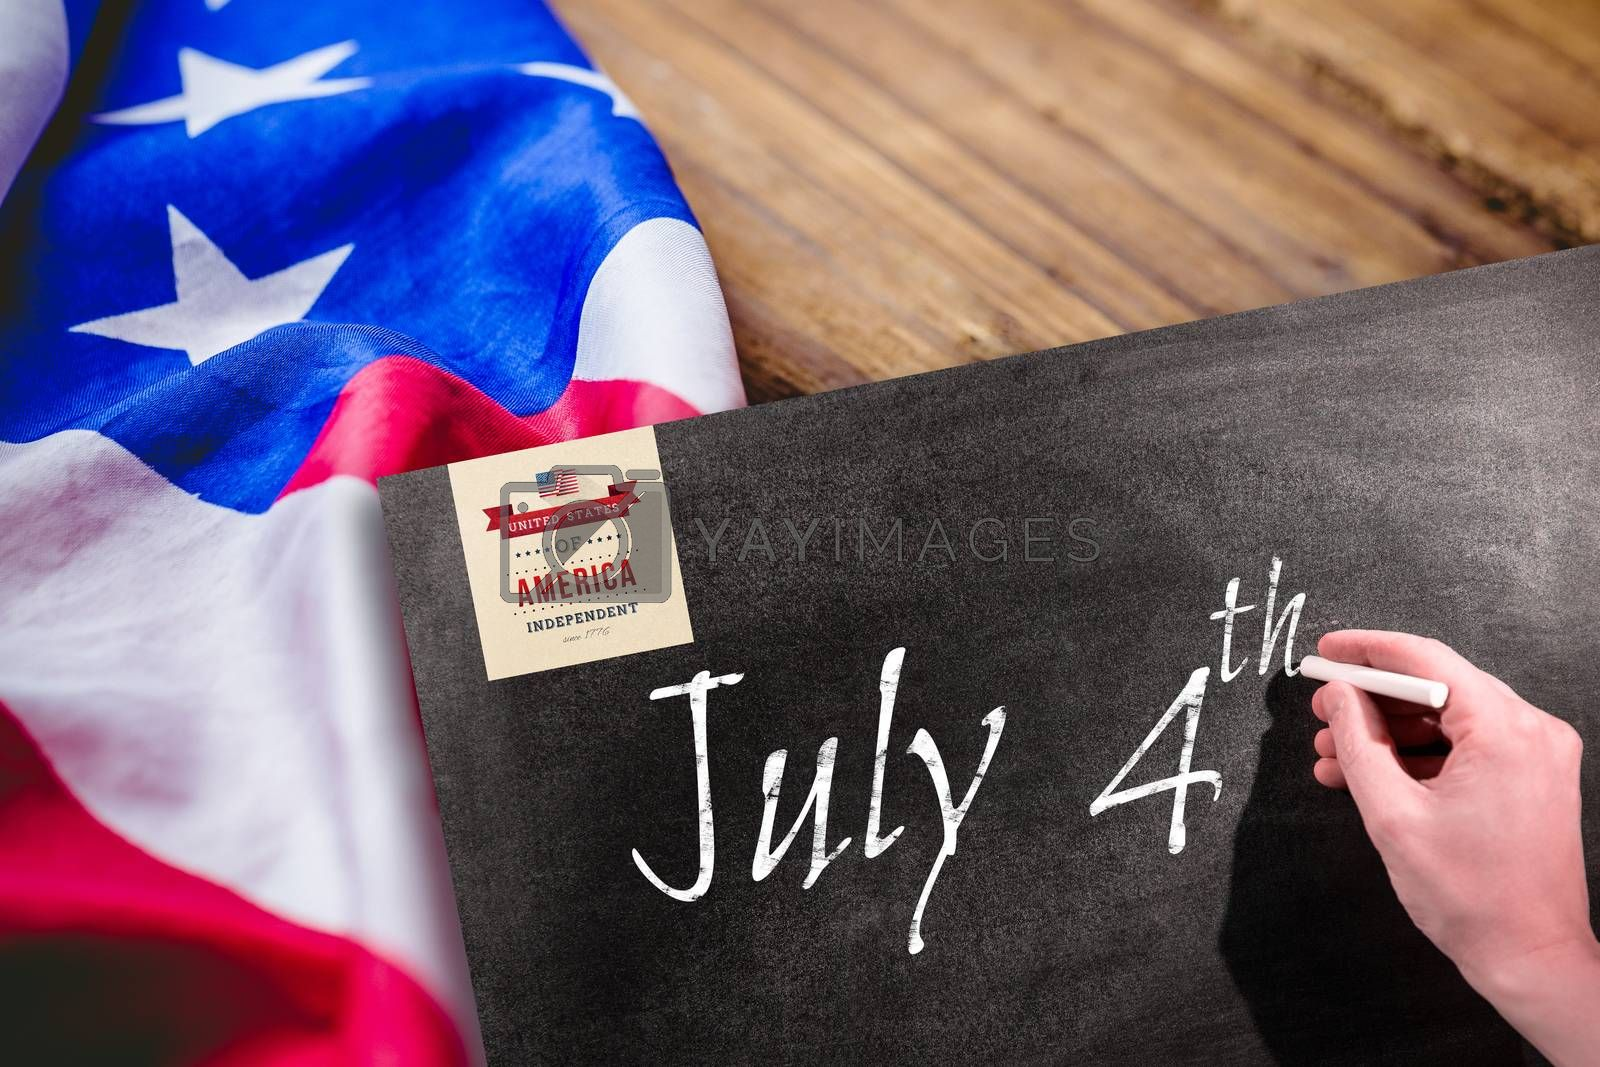 Independence day graphic against man drawing on chalkboard